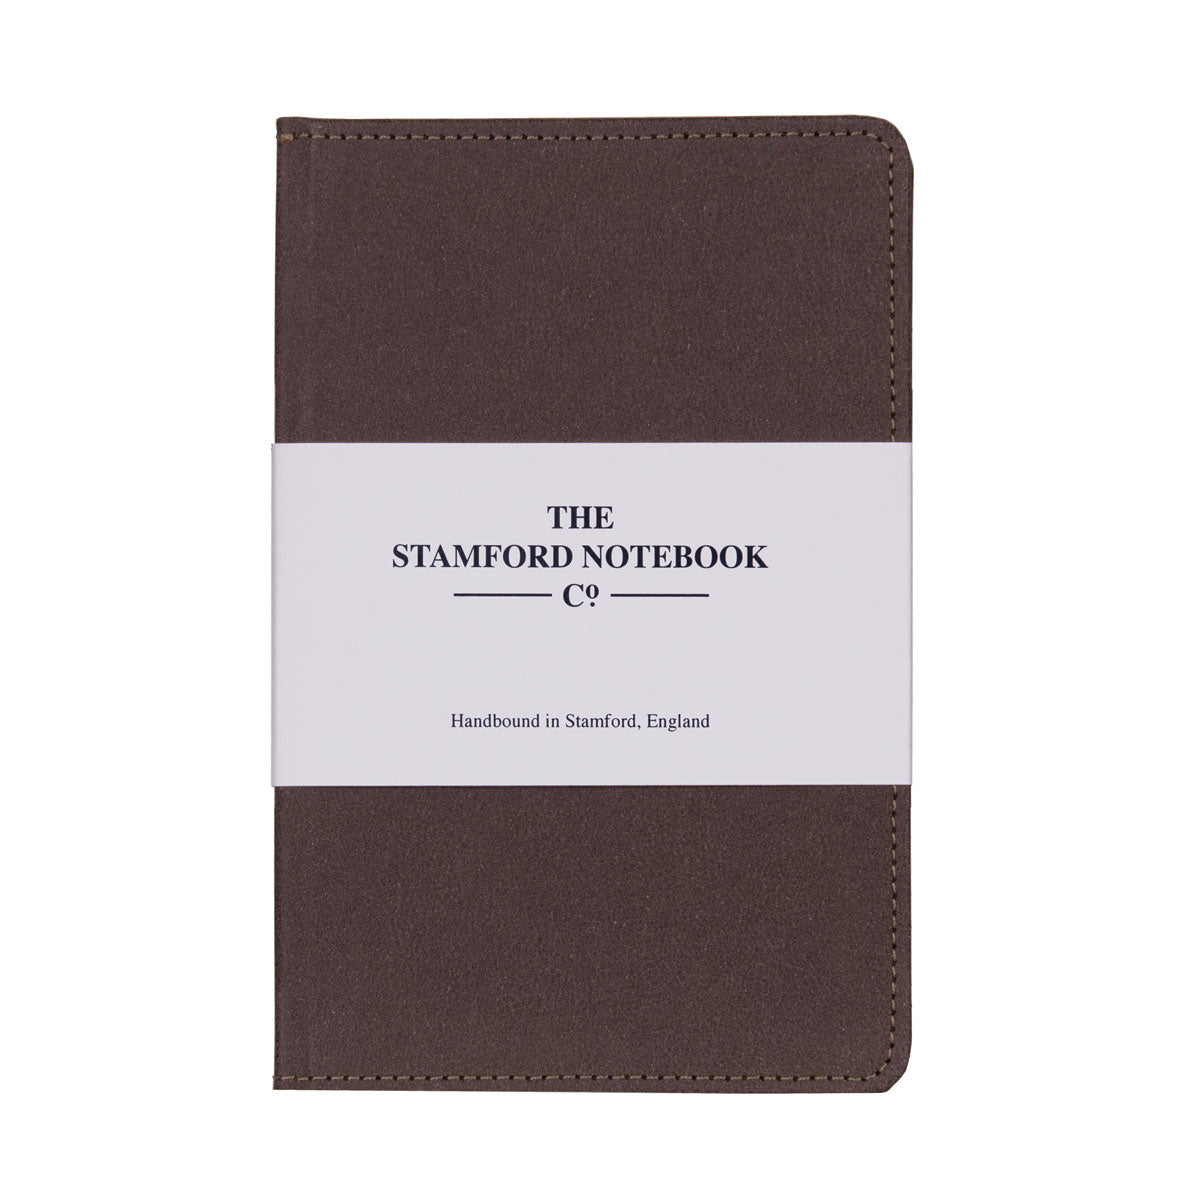 Vintage stitched Recycled Leather Notebook in Chocolate